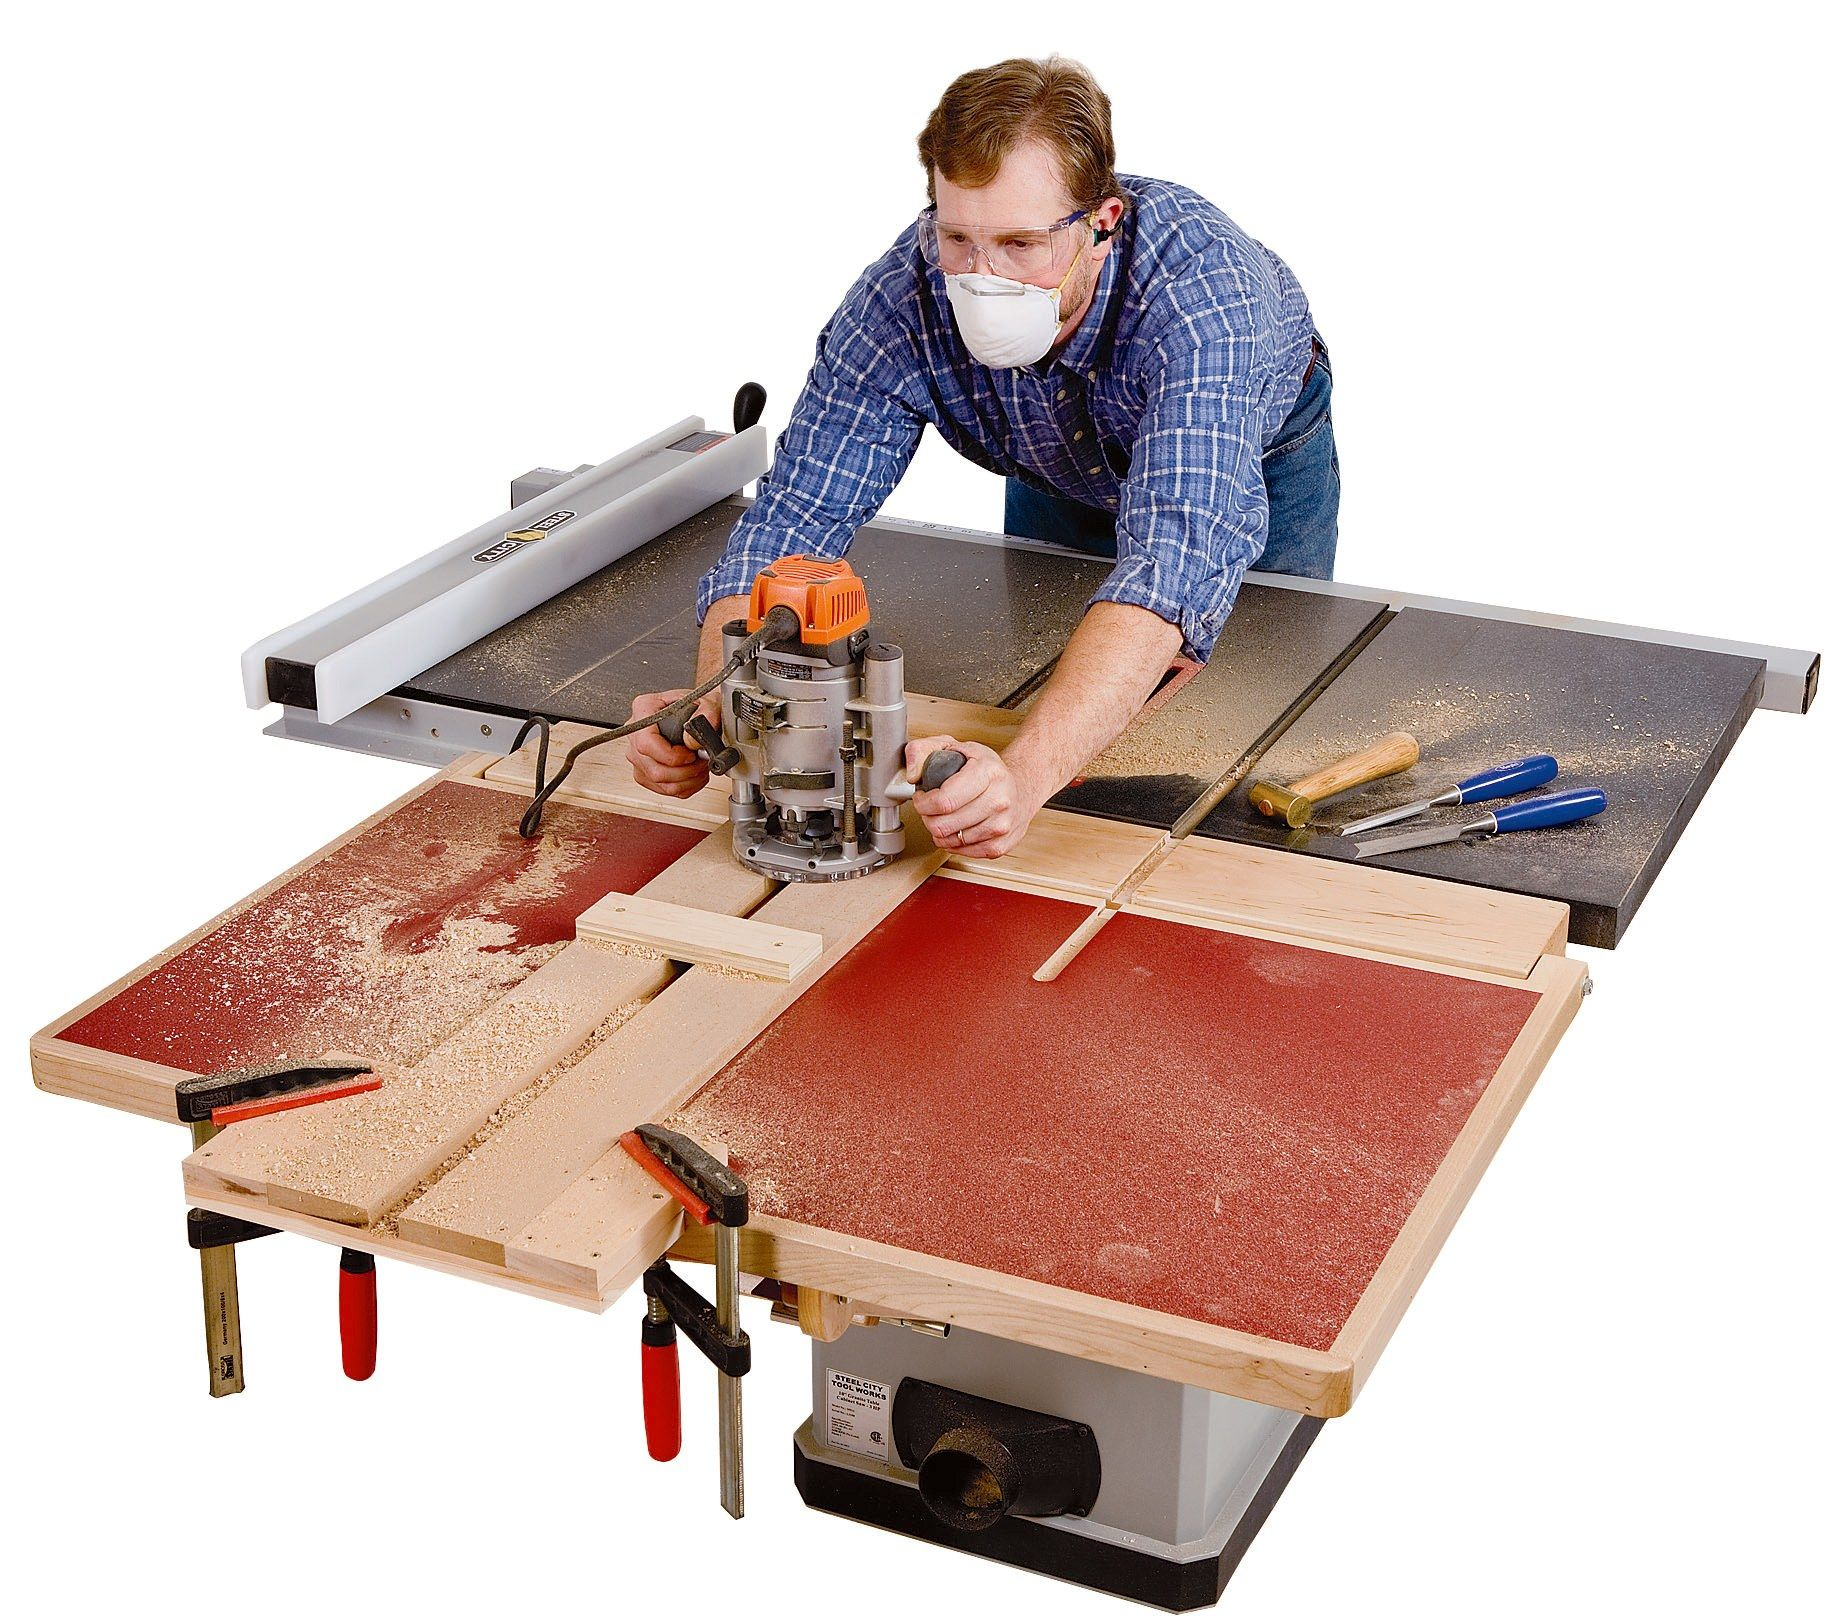 Built In Folding Table Build A Folding Outfeed Table To Mount On Your Table Saw